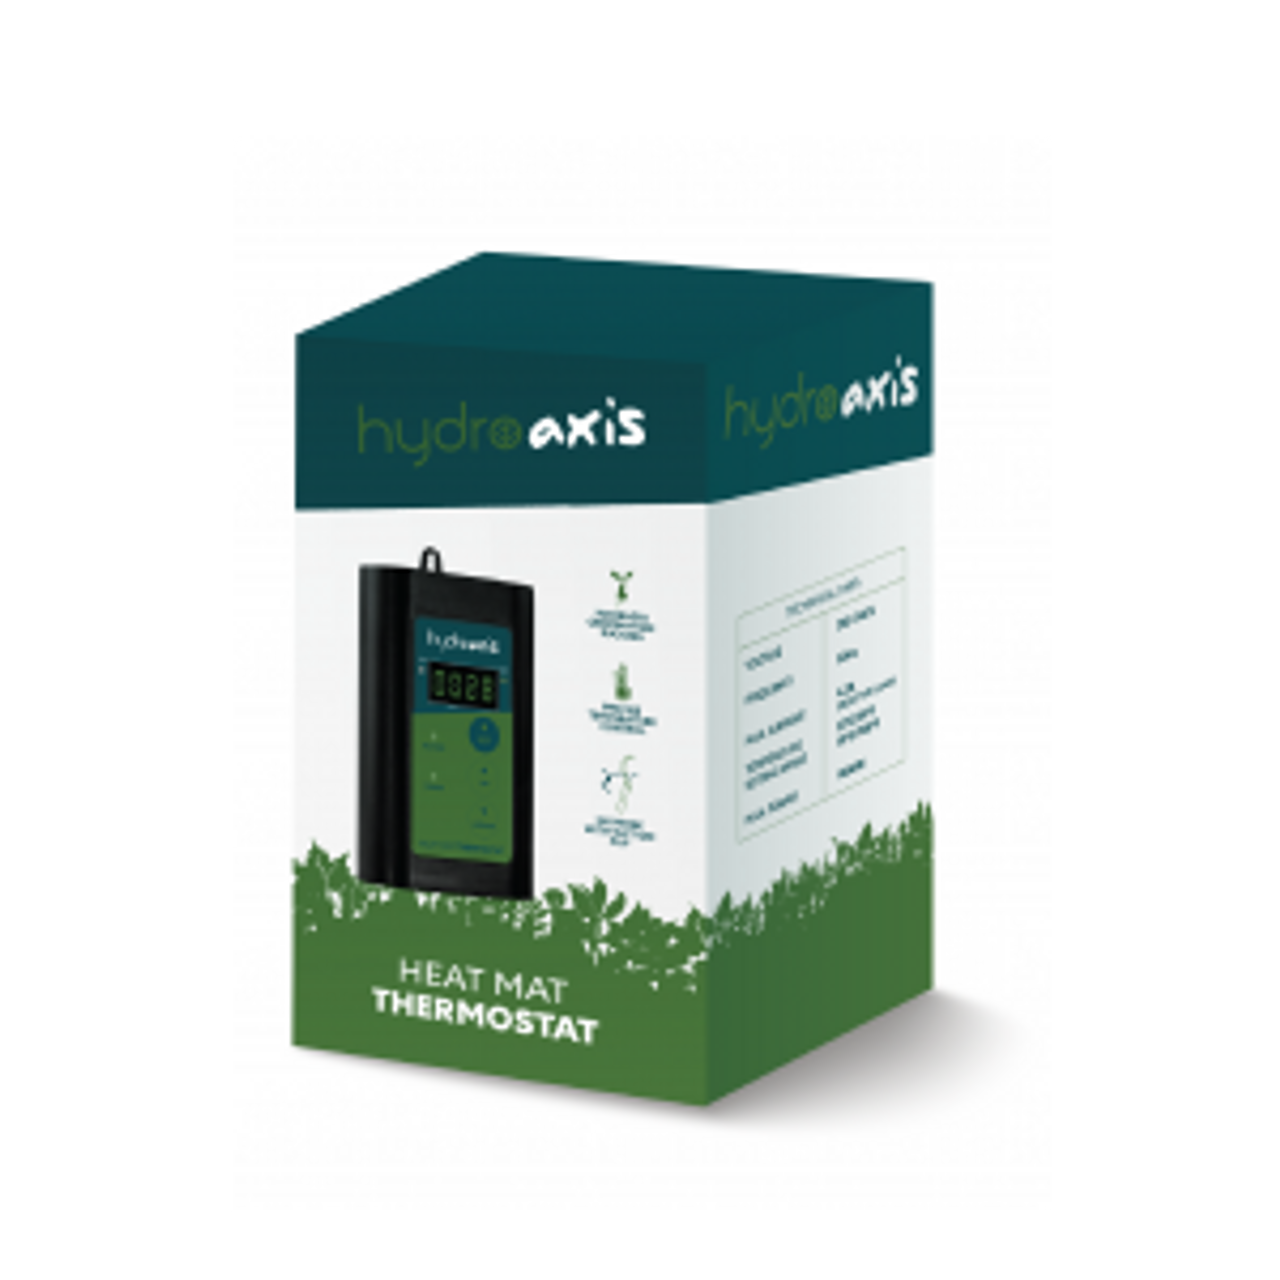 Hydro Axis Heatmat Thermostat Controller